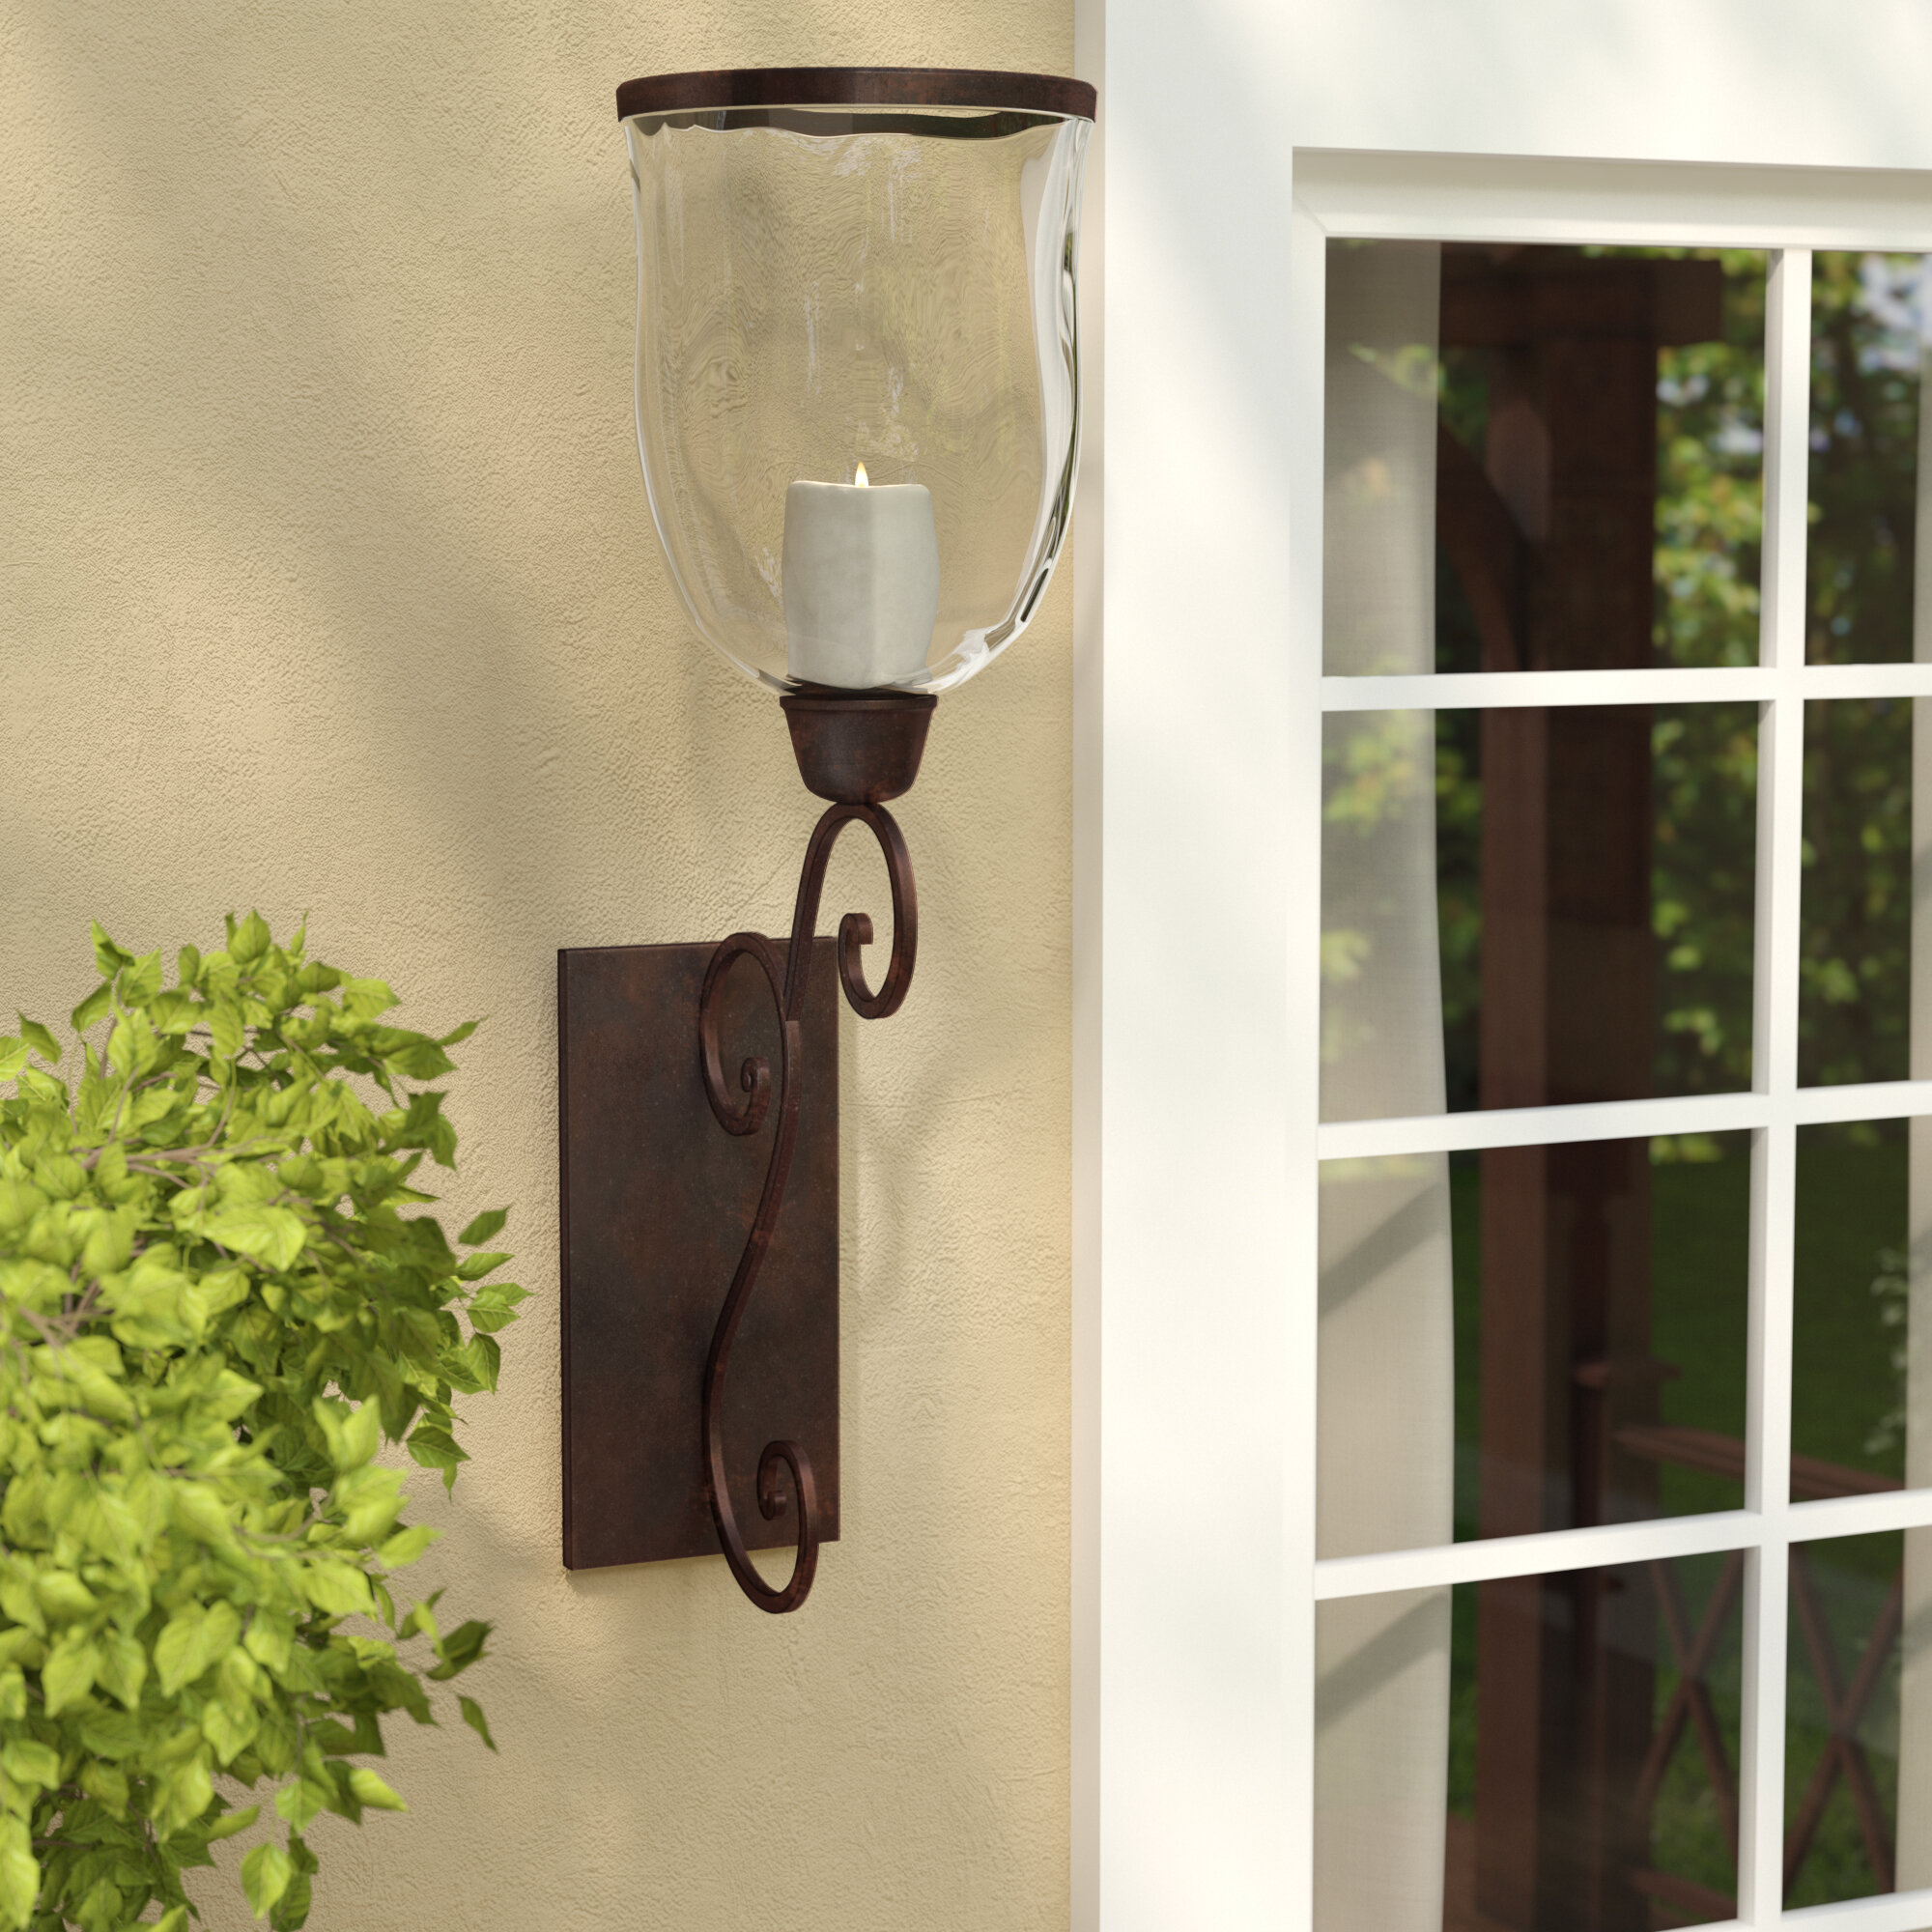 Metal Sconce Candle Holders Free Shipping Over 35 Wayfair